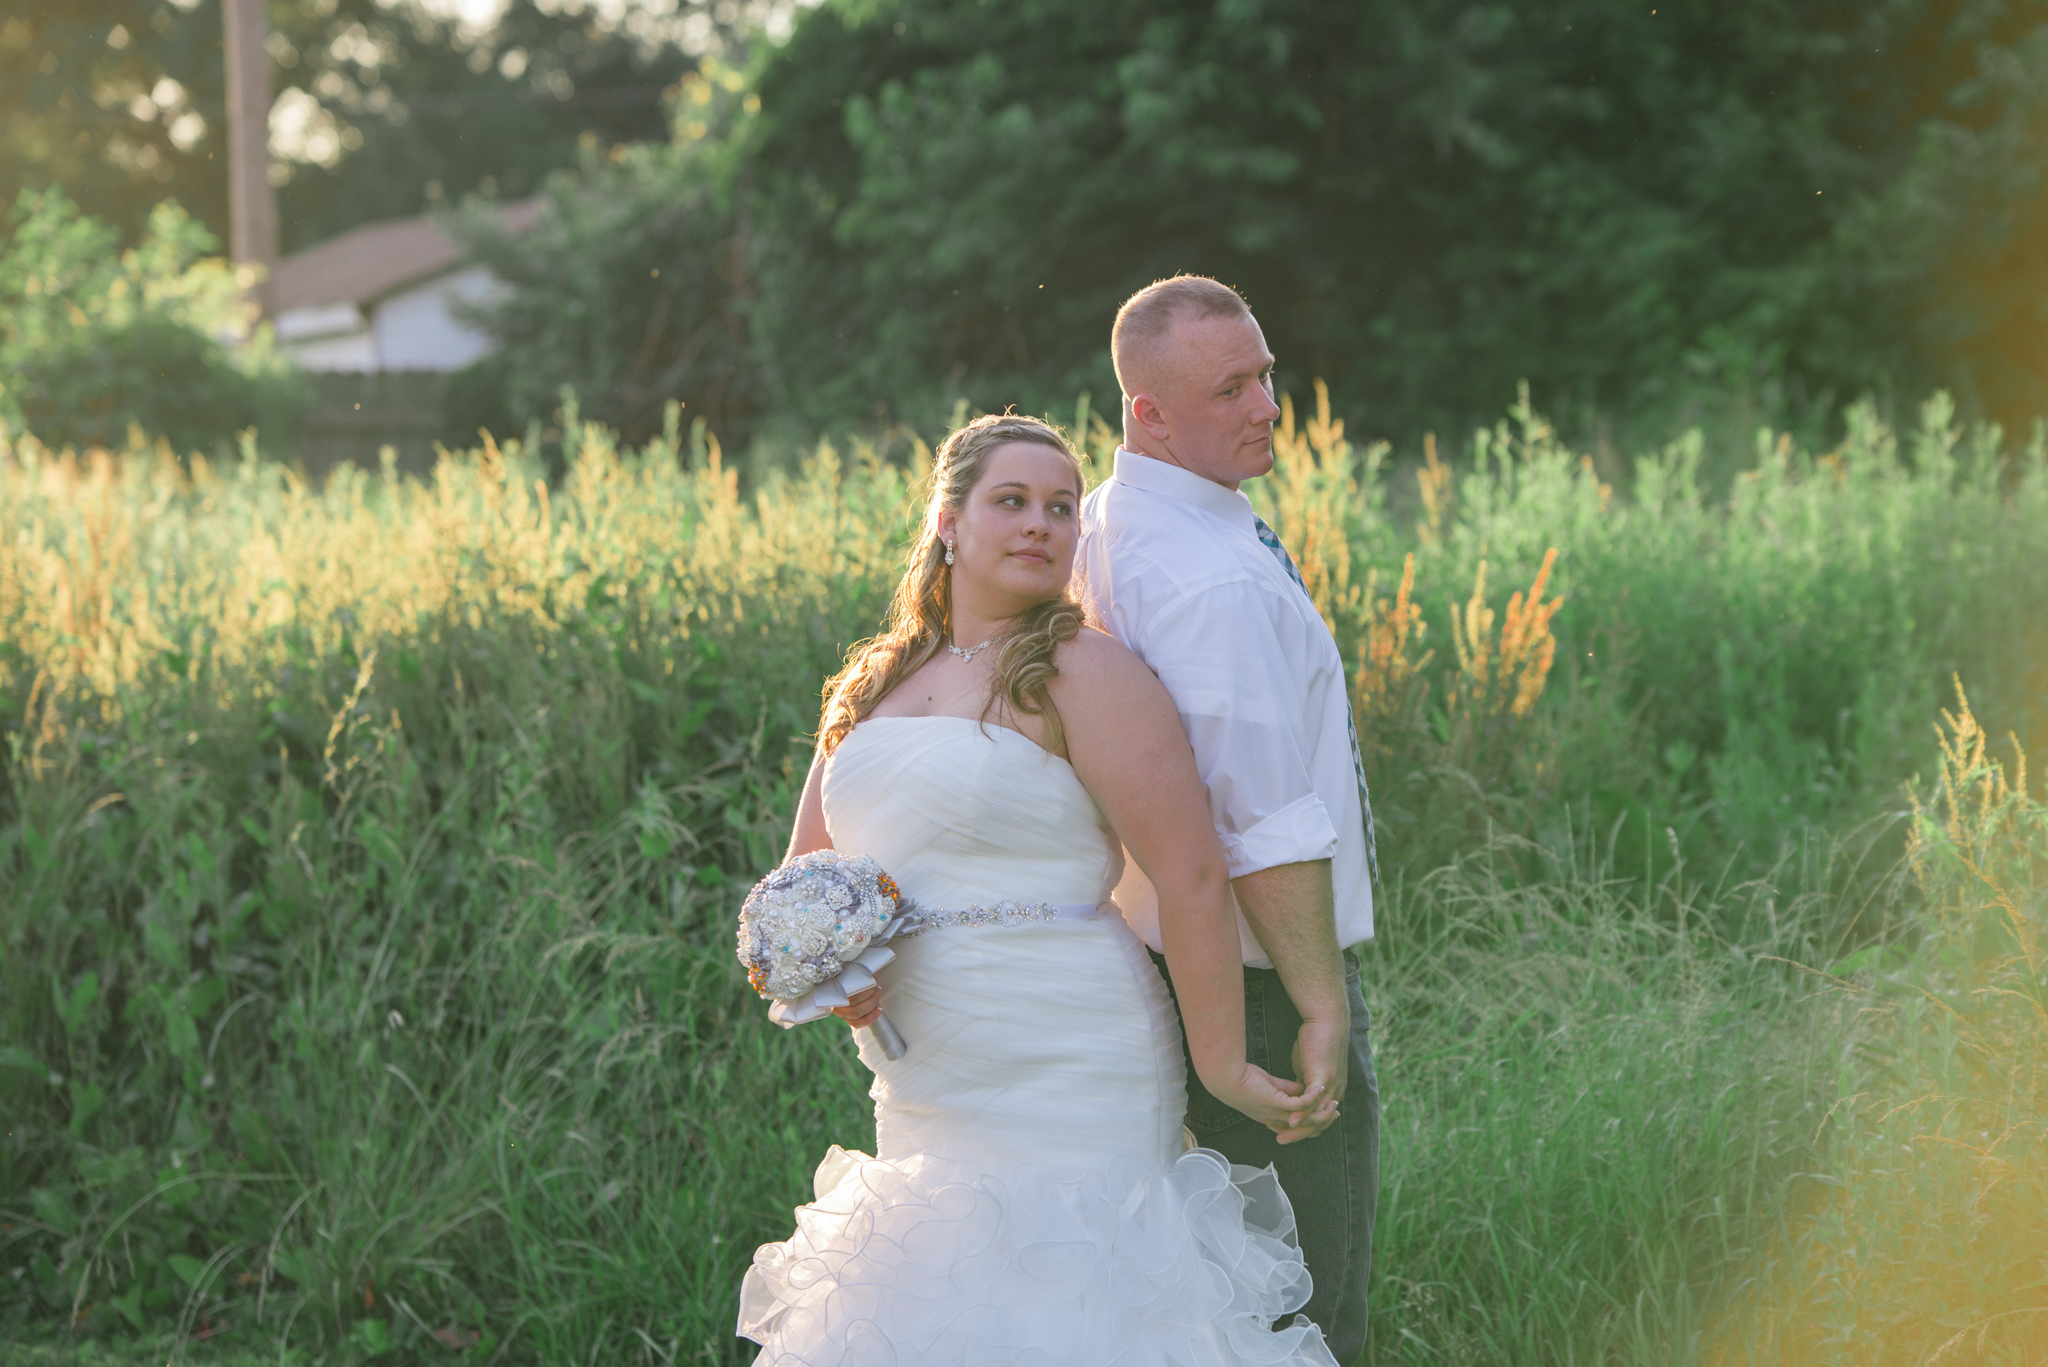 Winchester KY, Winchester KY wedding photographer, Winchester KY photographer, outdoor wedding photos, ky wedding, ky bride, ky outdoor wedding ideas, central ky wedding photographers